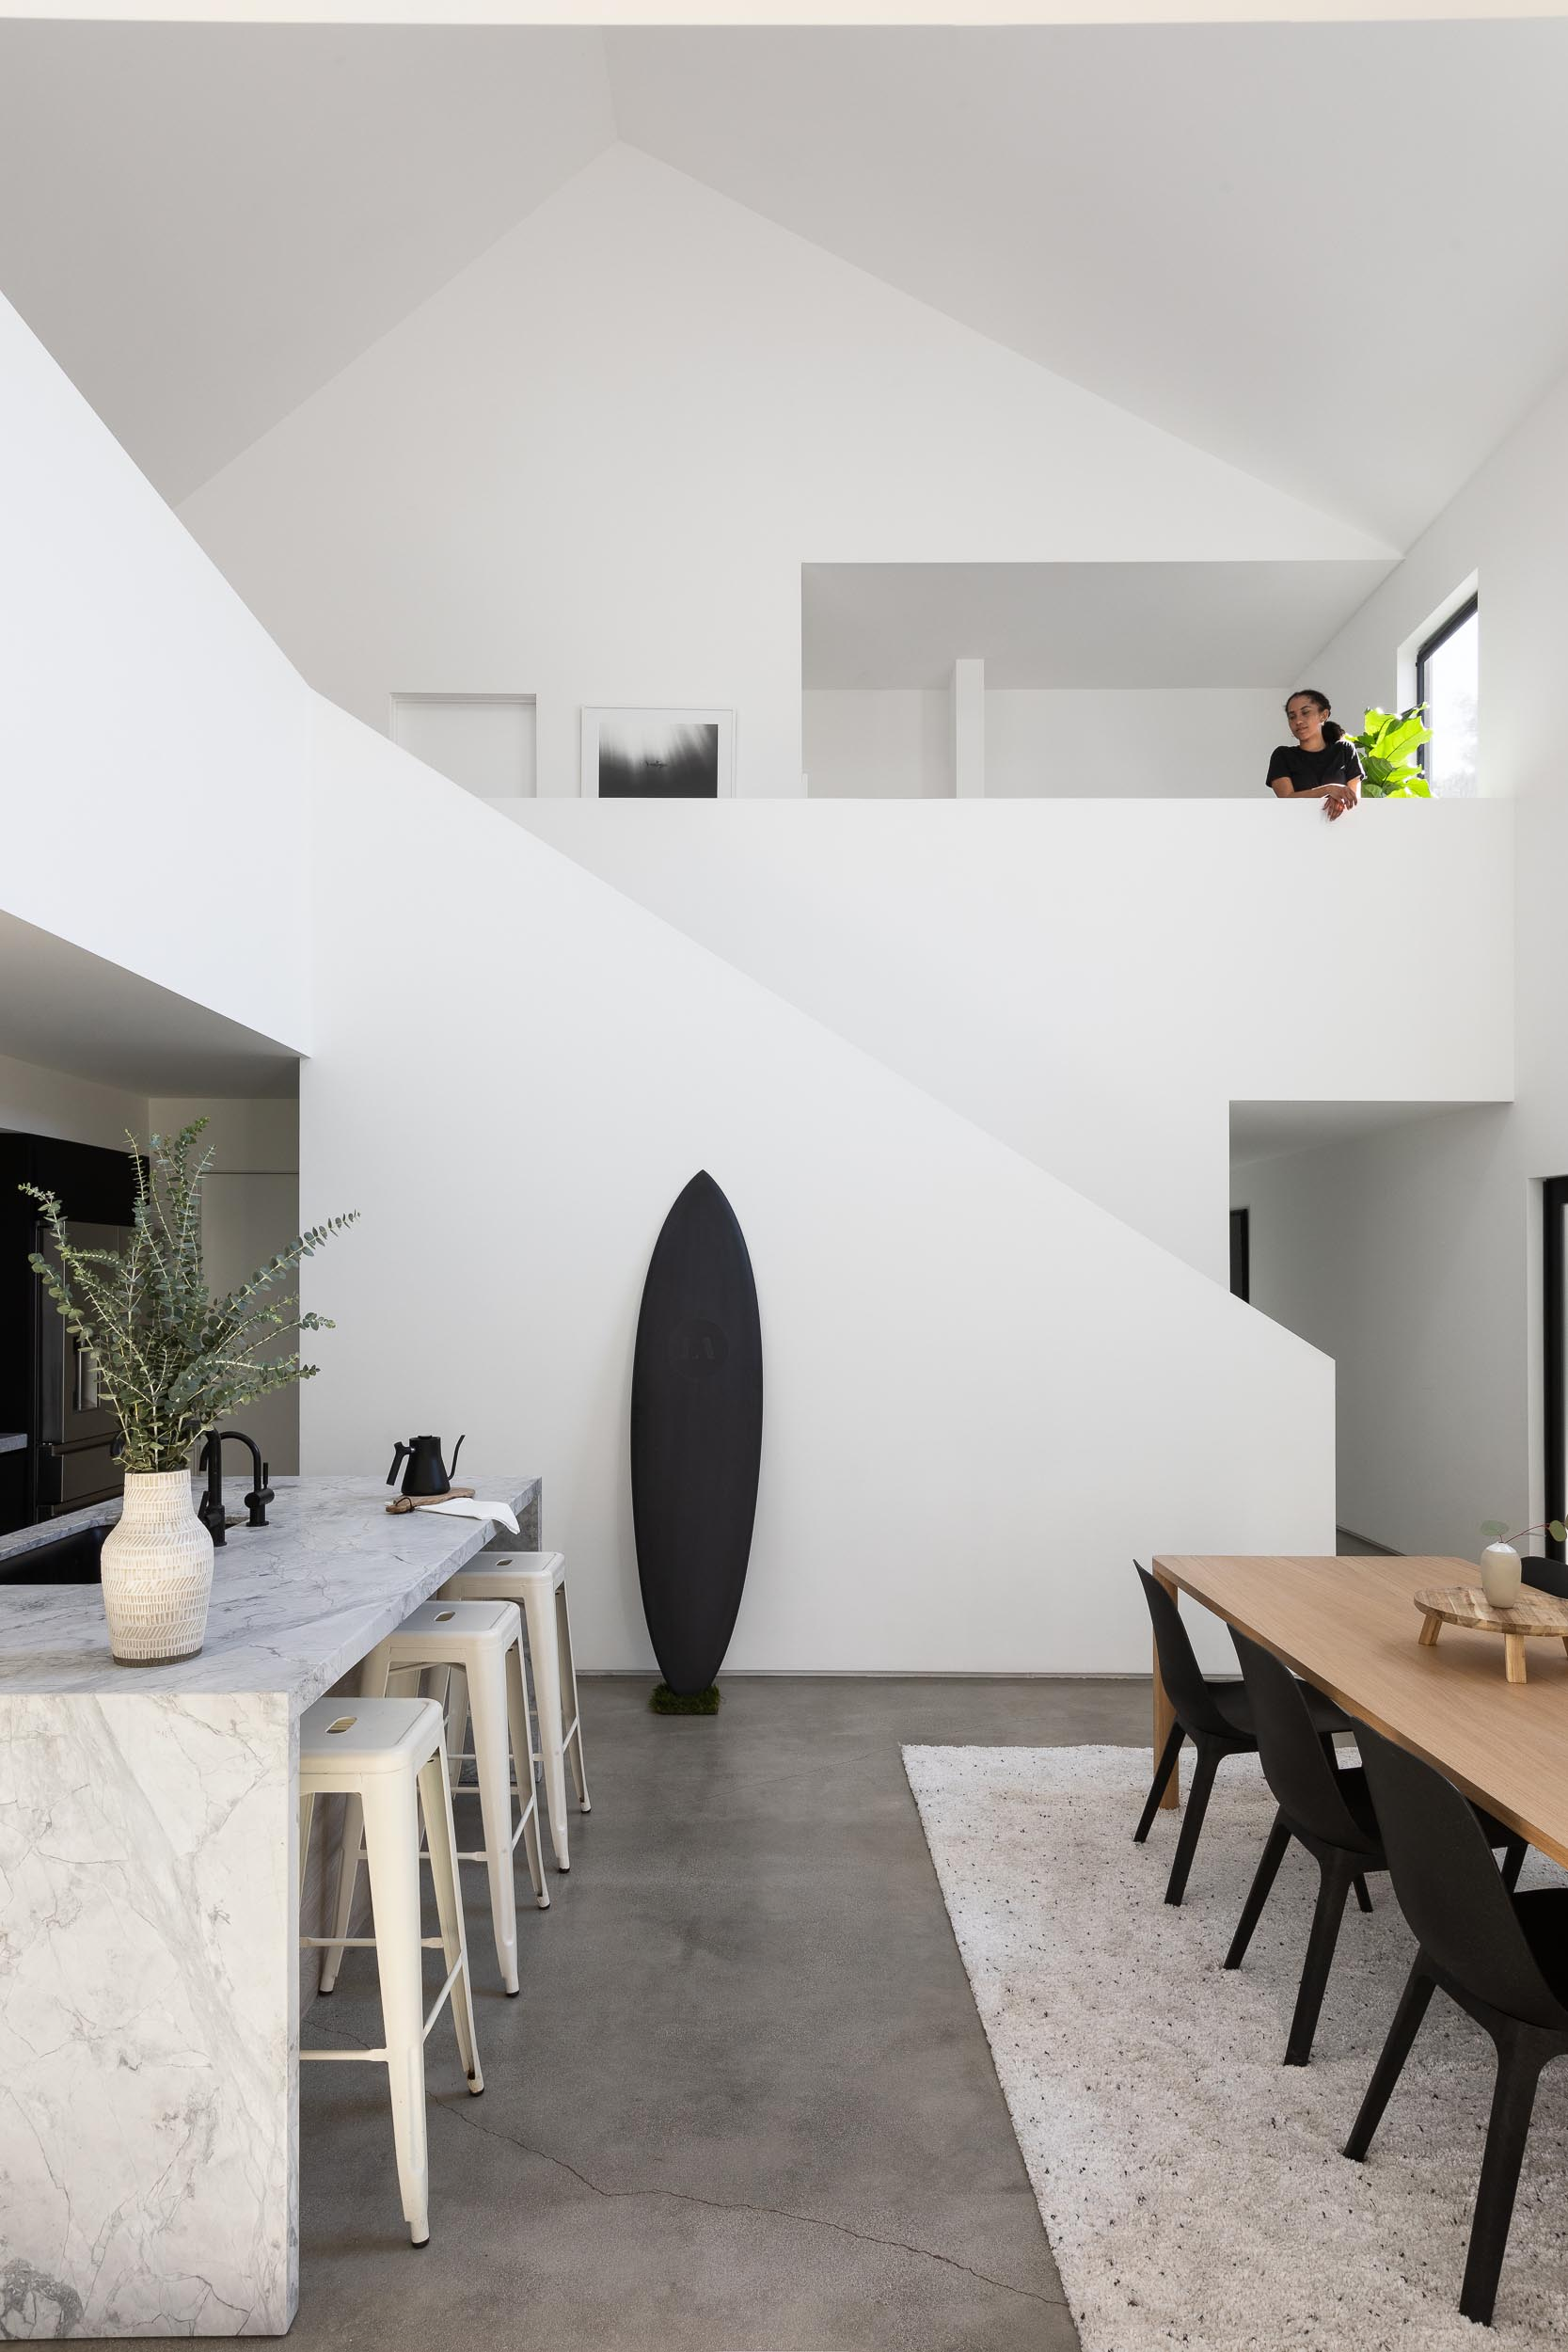 This modern home interior has the dining room next to the kitchen island, which was designed with with room for seating, while the kitchen has matte black lower cabinets and light wood upper cabinets.